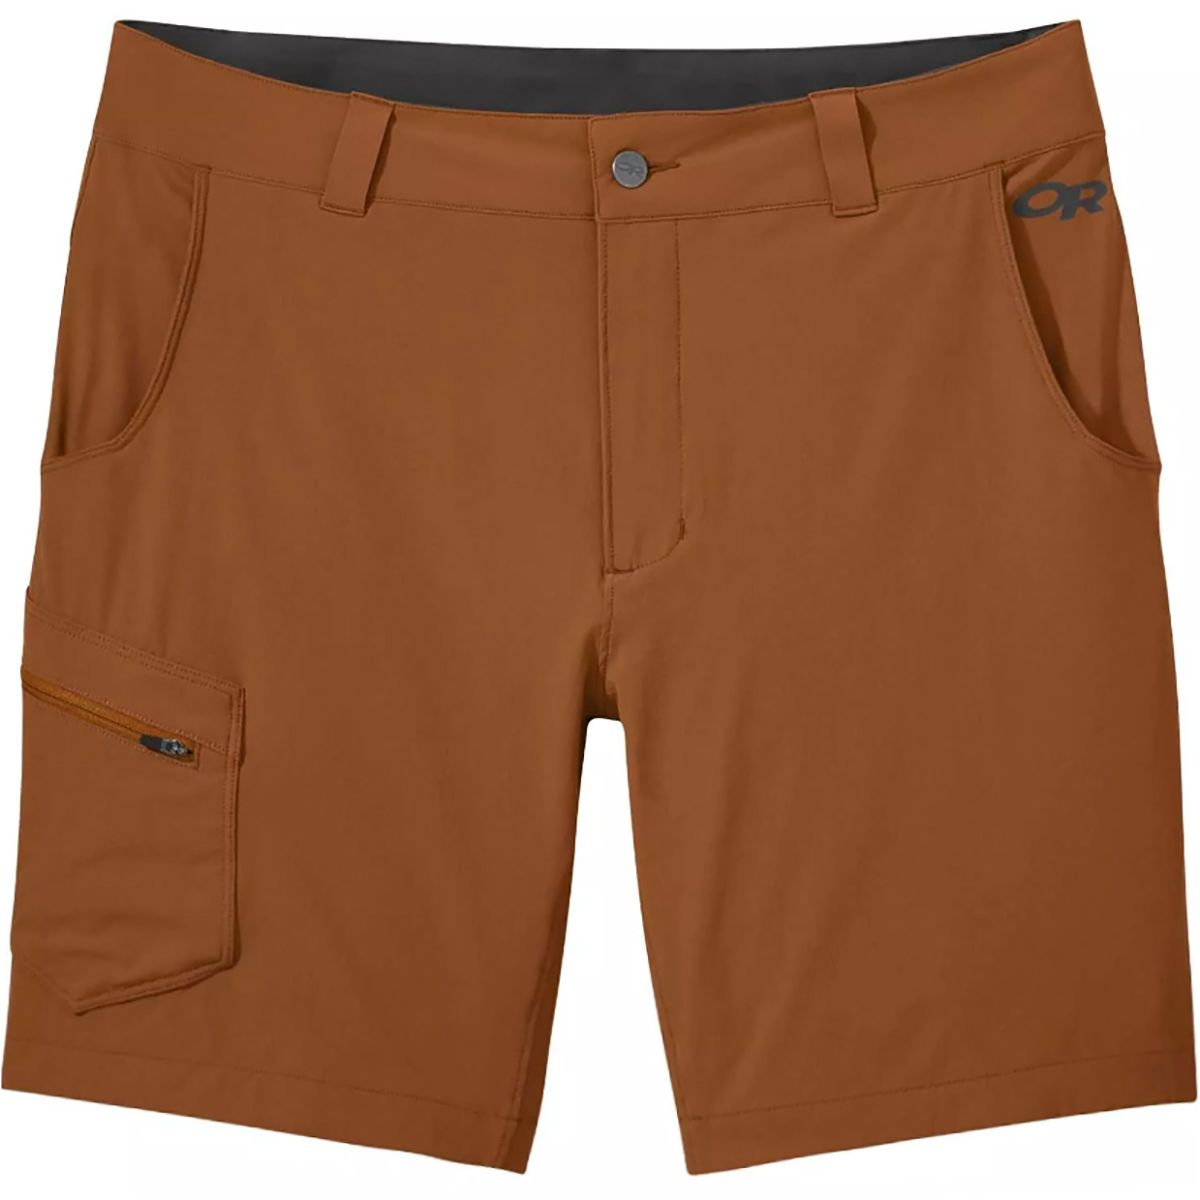 Fear No Fish Men Summer Casual Board Shorts Quick Dry Swim Trunks with Pockets